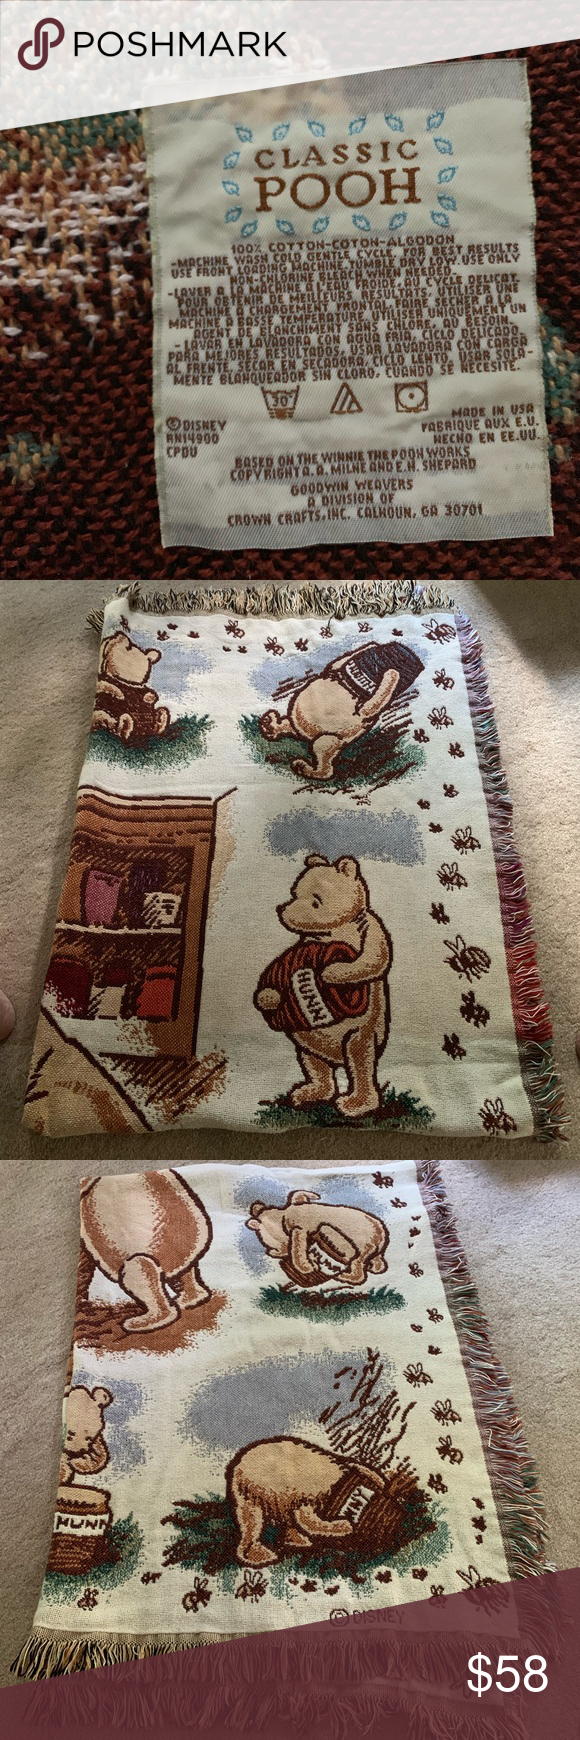 Winnie The Pooh Cotton Goodwin Weavers Blanket Woven Blanket